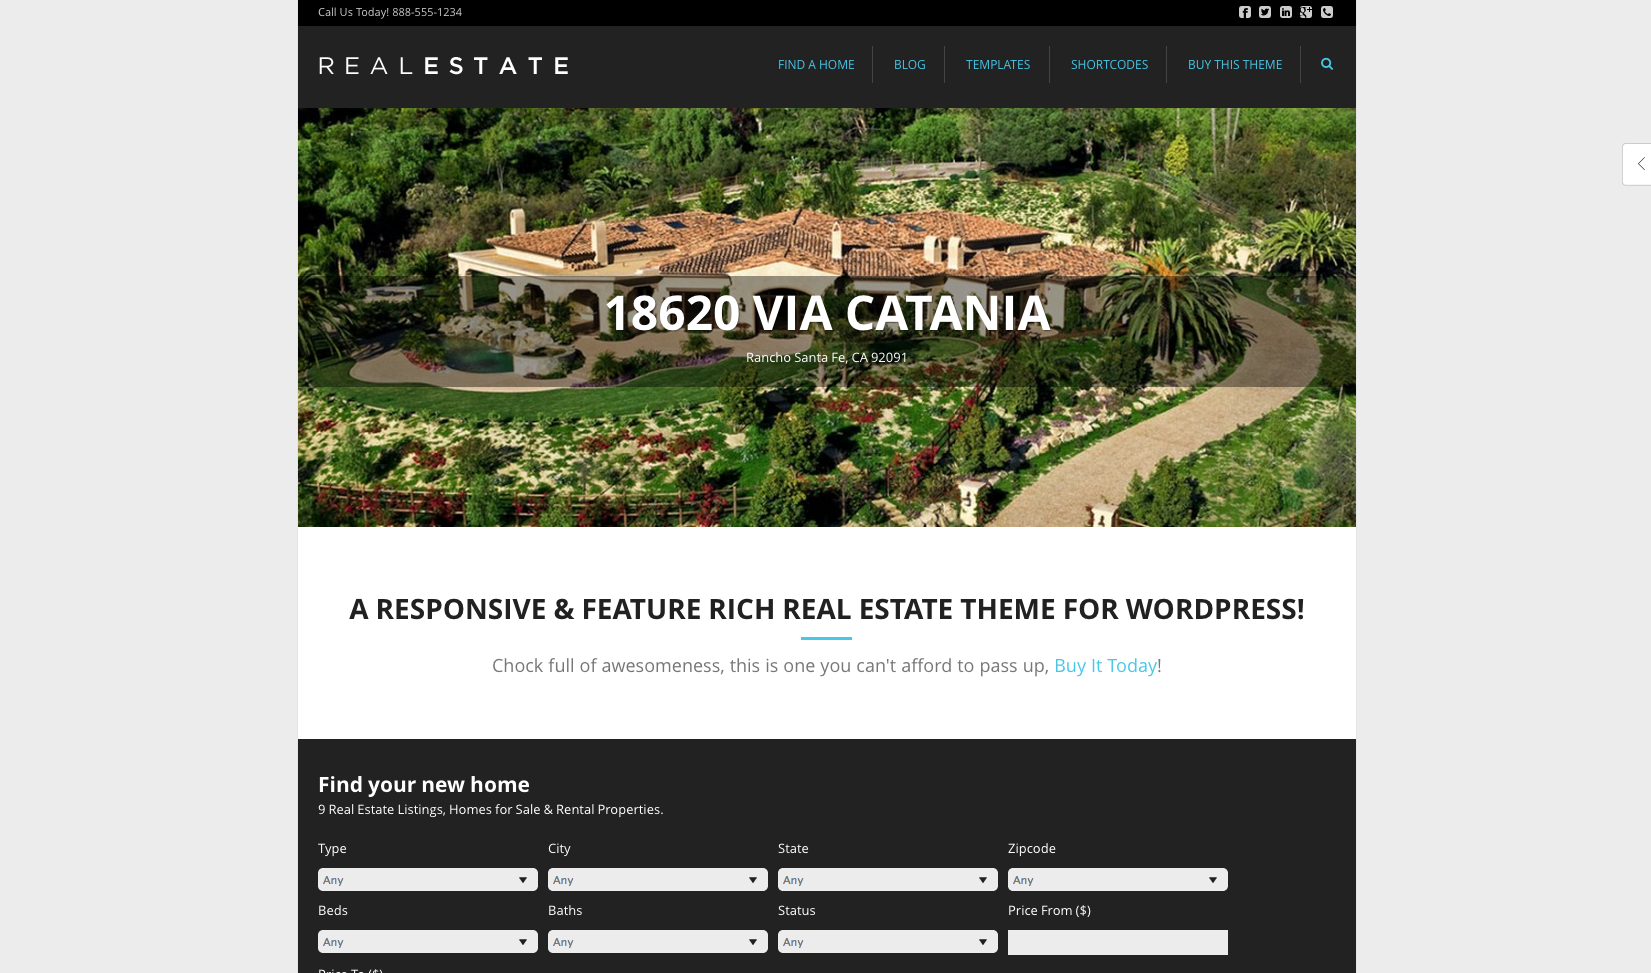 WP Pro Real Estate 5 flat WordPress theme